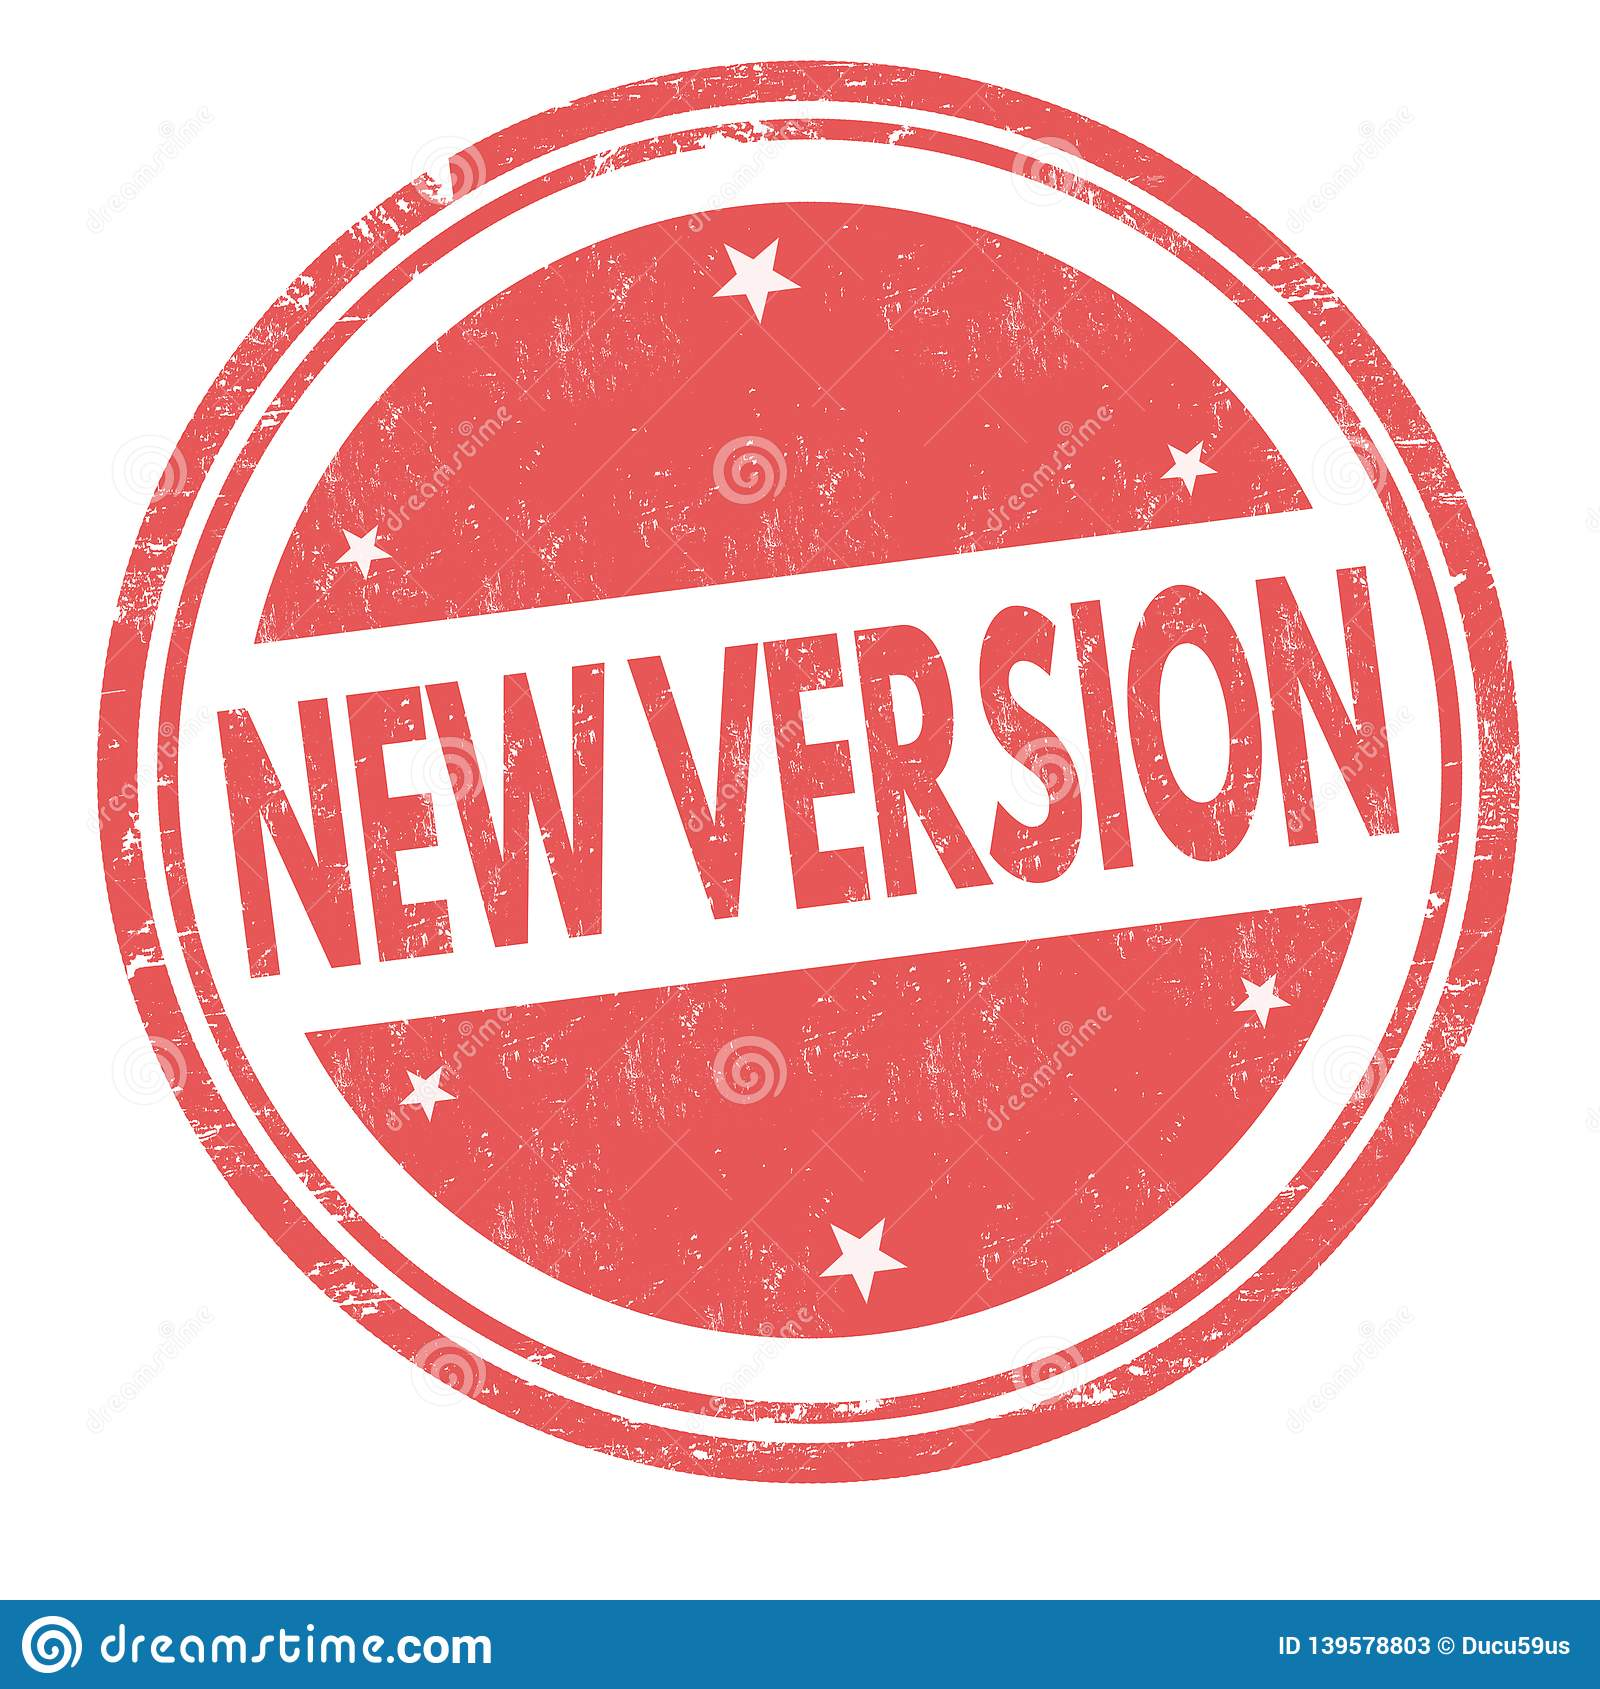 New version sign or stamp